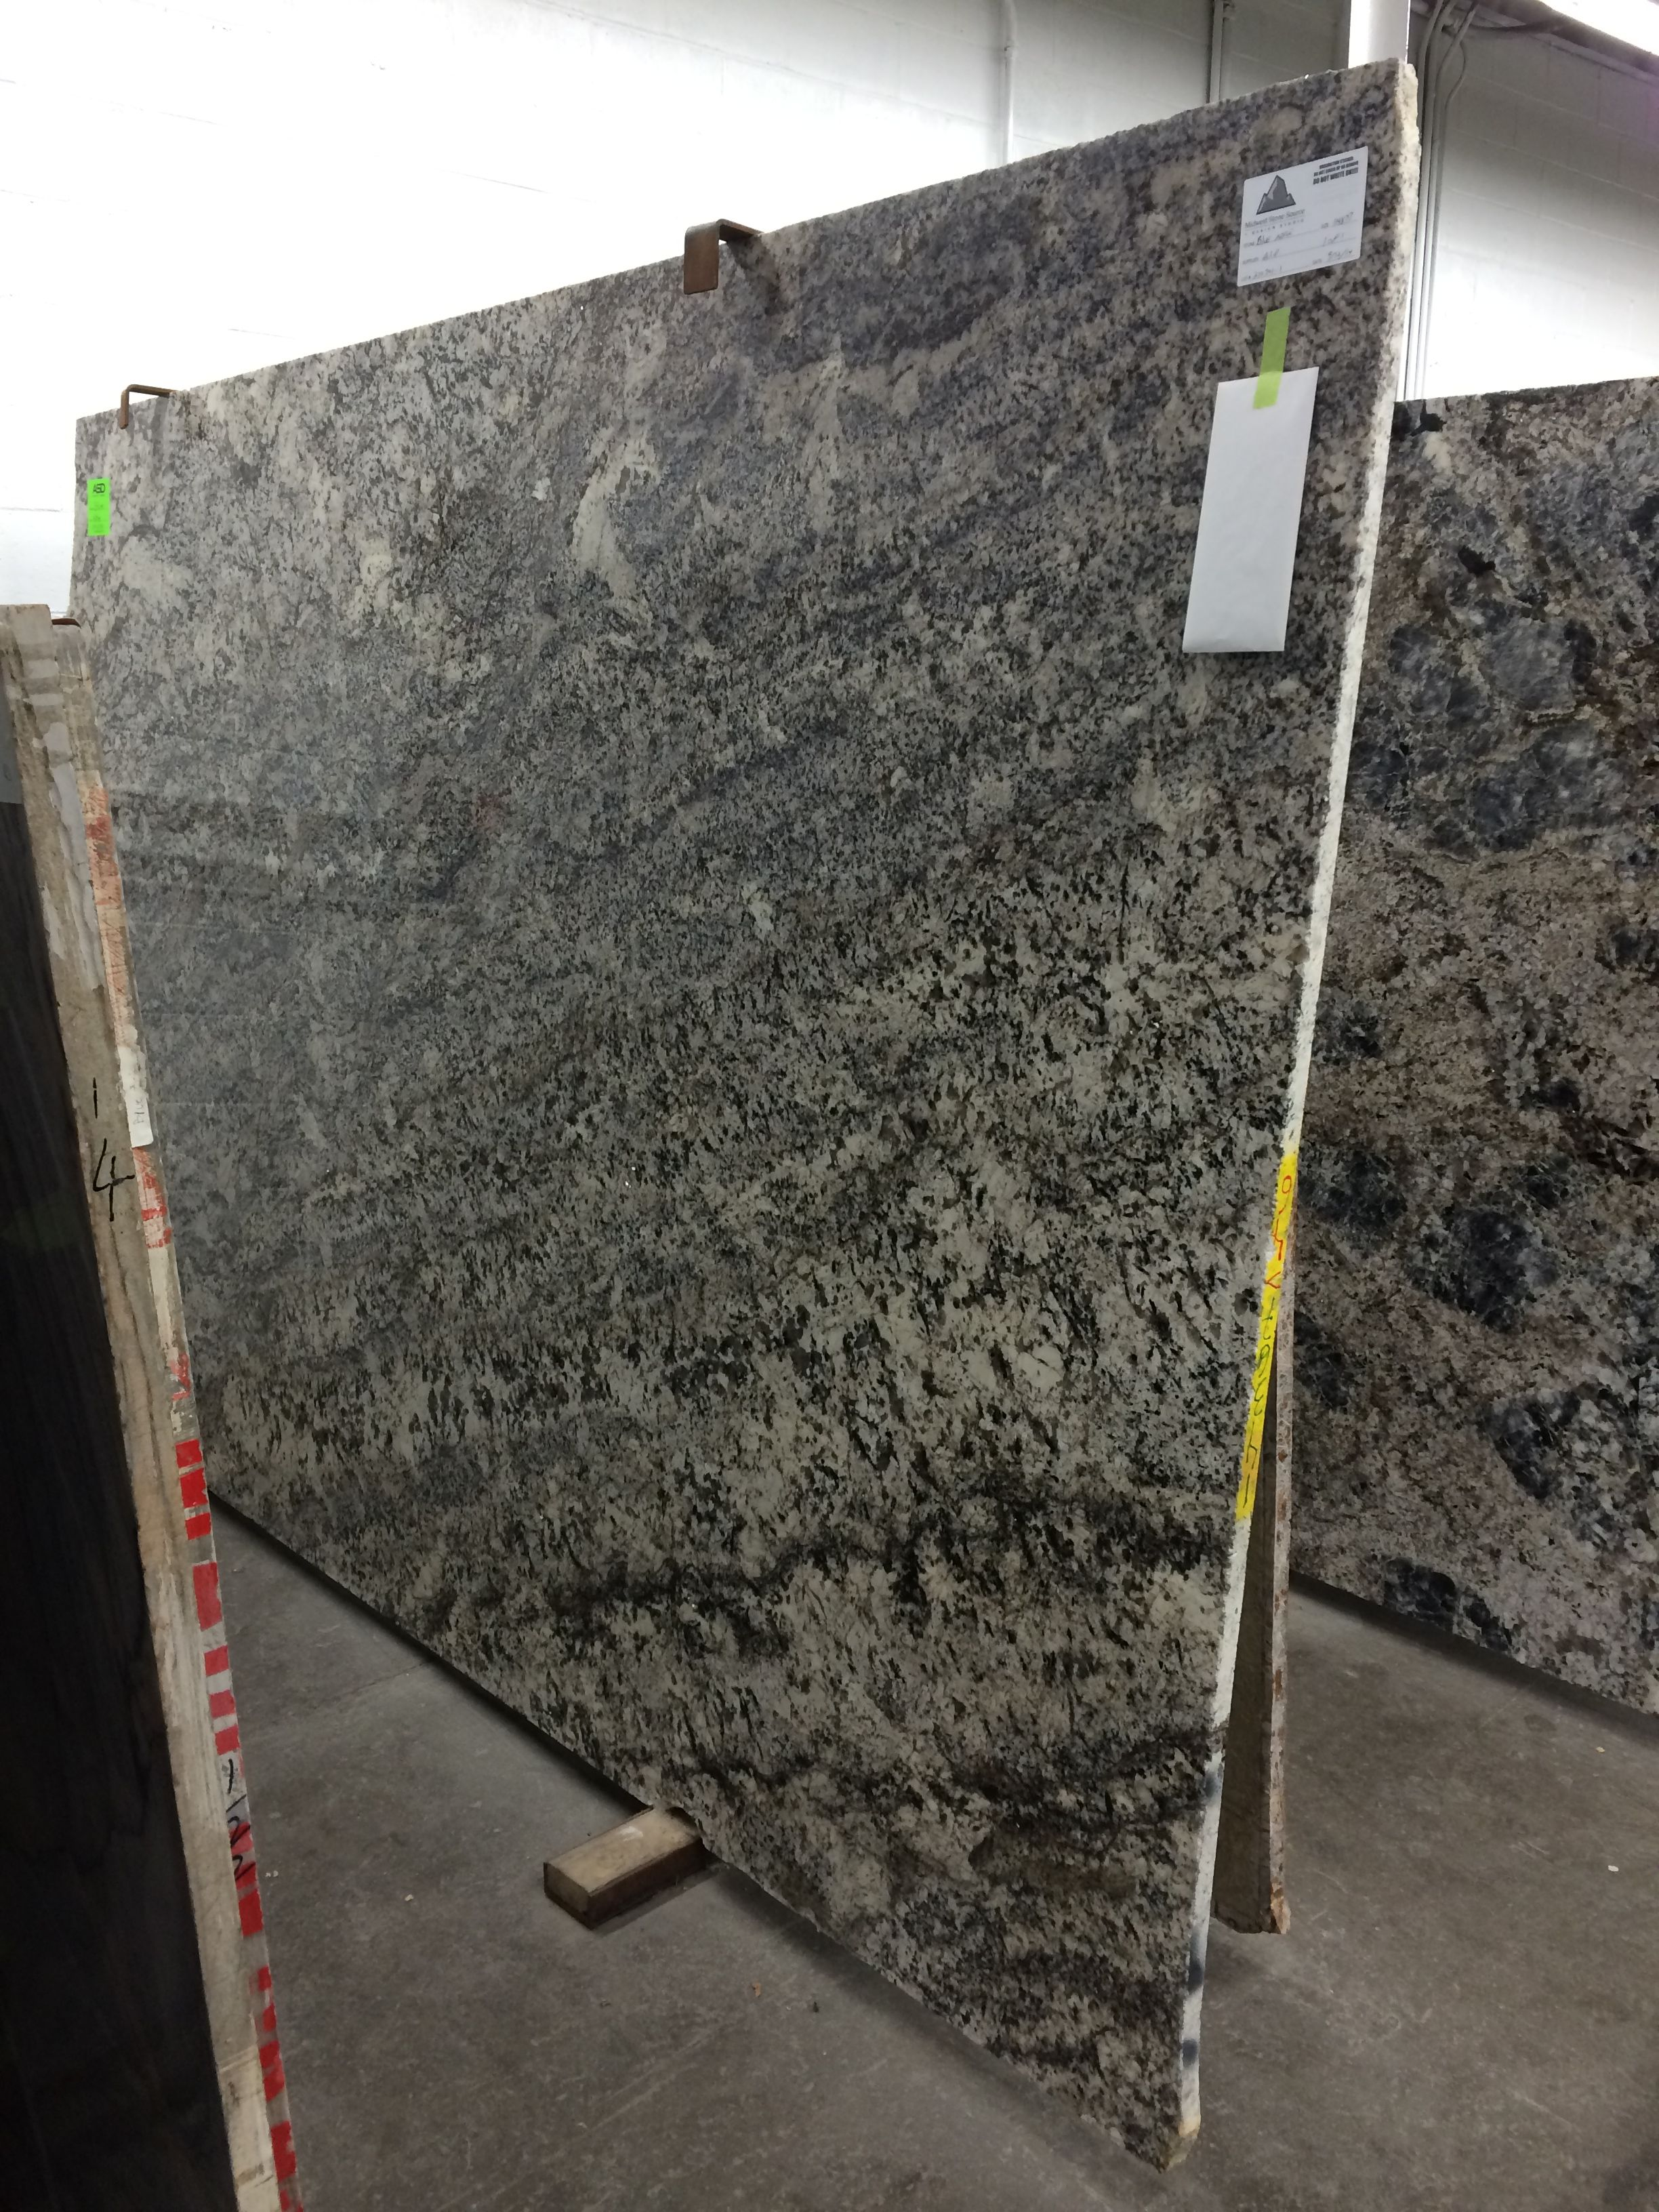 As You Can See, Blue Nile Granite Has Beautiful Motion! Elegant And Unique!